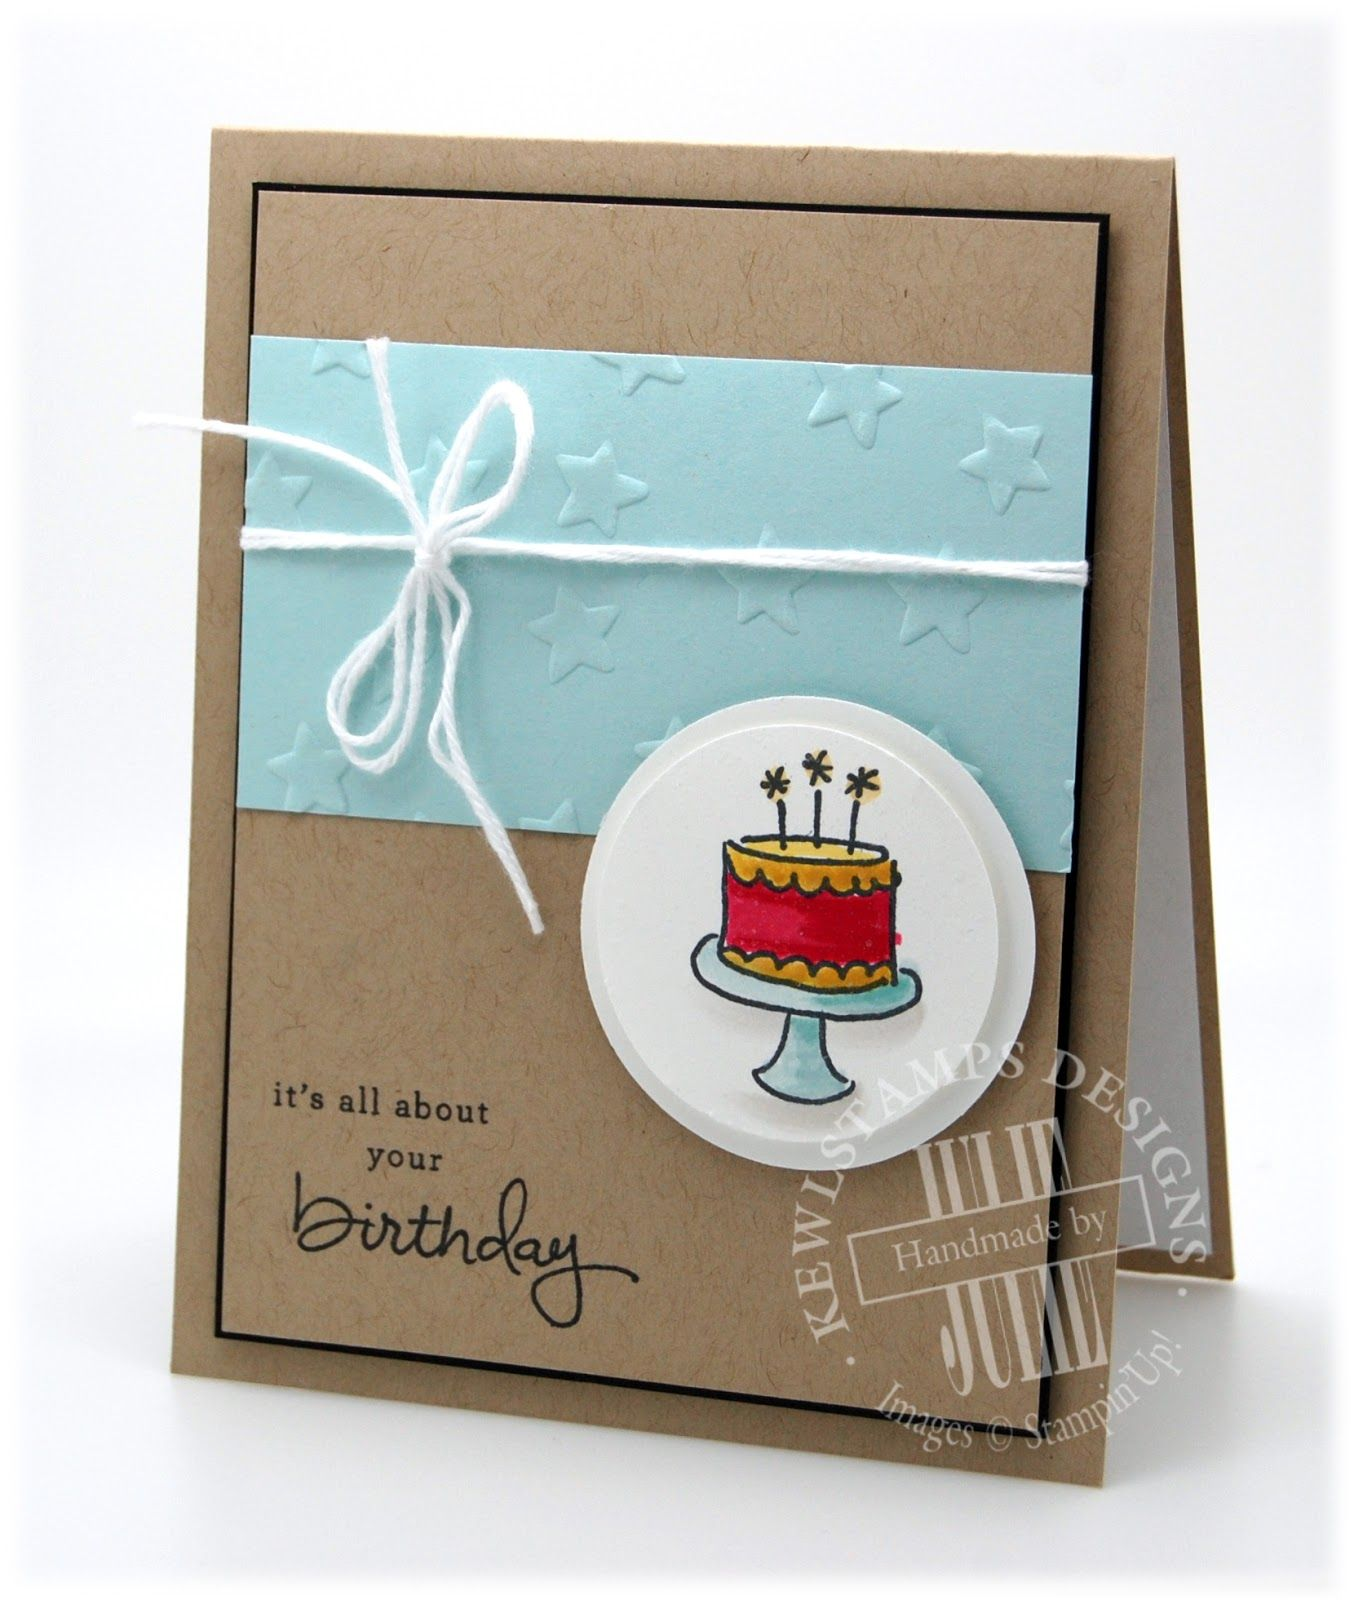 Quick Birthday Card Using Endless Birthdway Wishes Stamp Set From Stampin'Up!